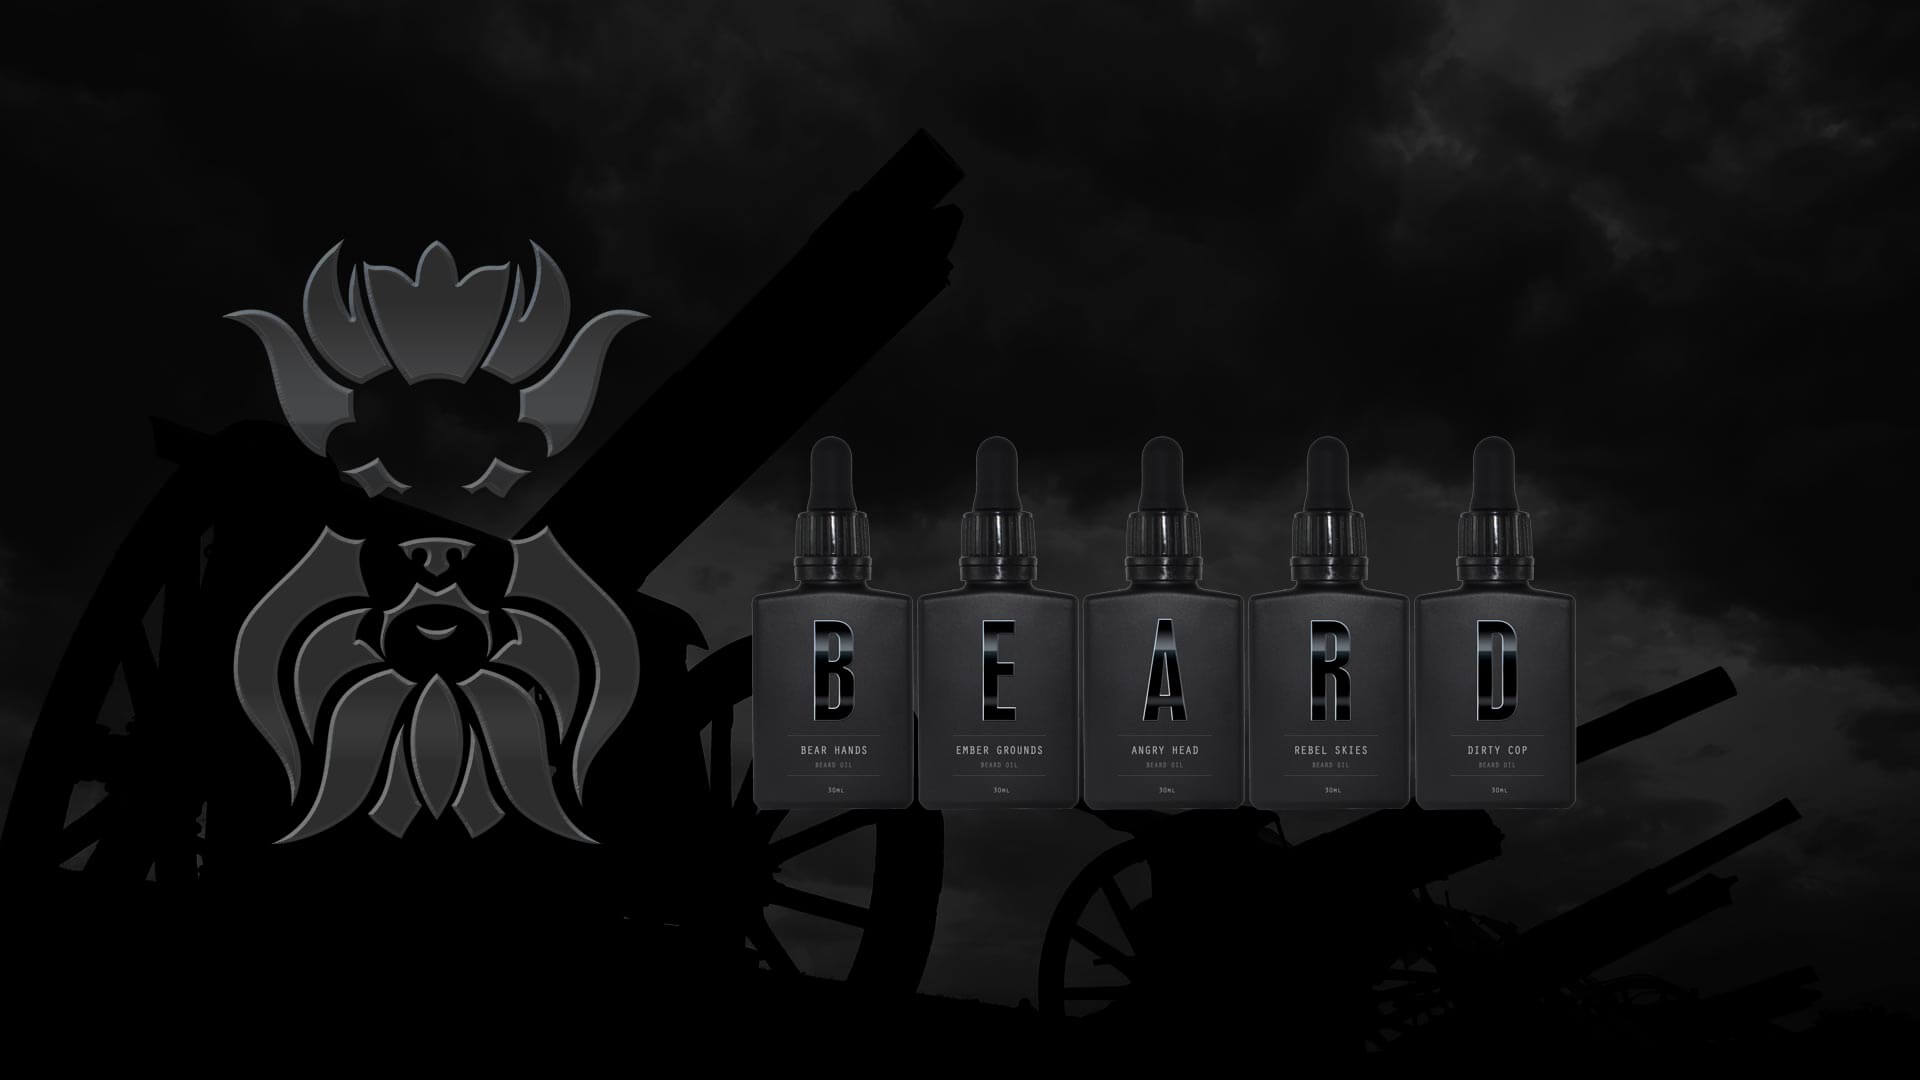 Spice up your beard life by getting all five of our man B.E.A.R.D oils in one awesome & heavily discounted beard care package deal from Beardifulman!